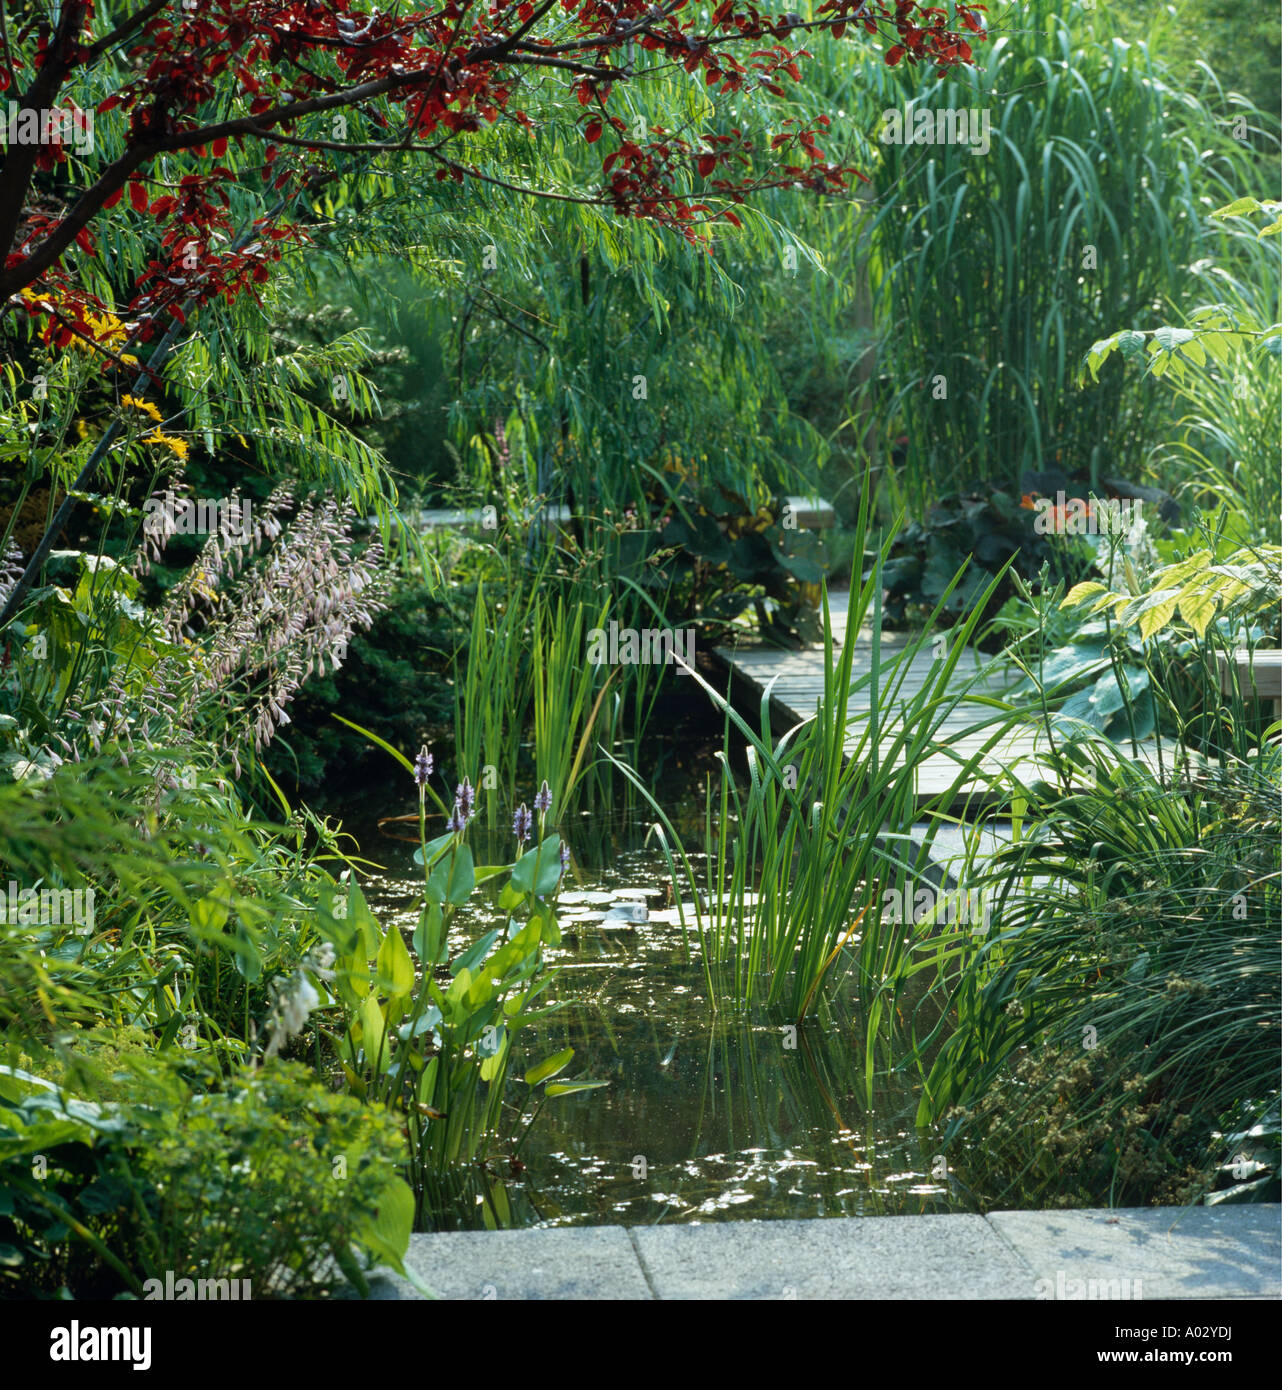 Lush planting around formal square garden pond stock photo for Square fish pond